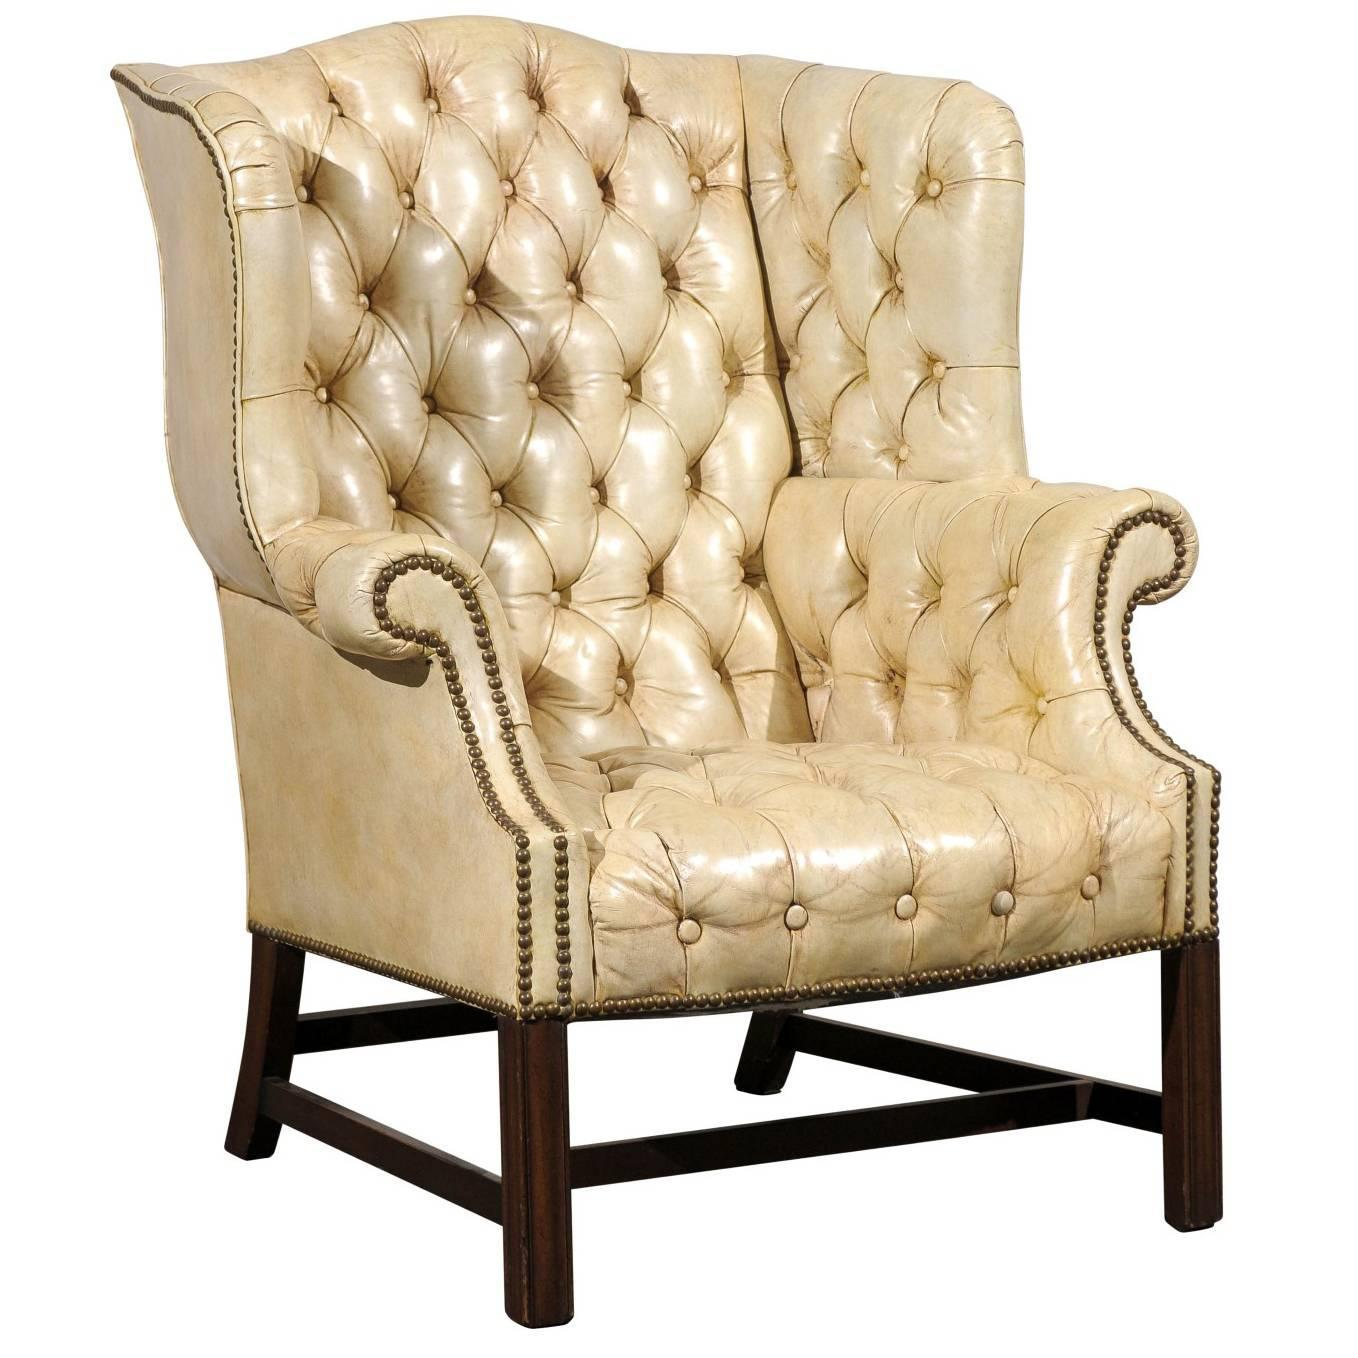 white leather chairs for sale portable baby high 20th century tufted georgian style wing chair